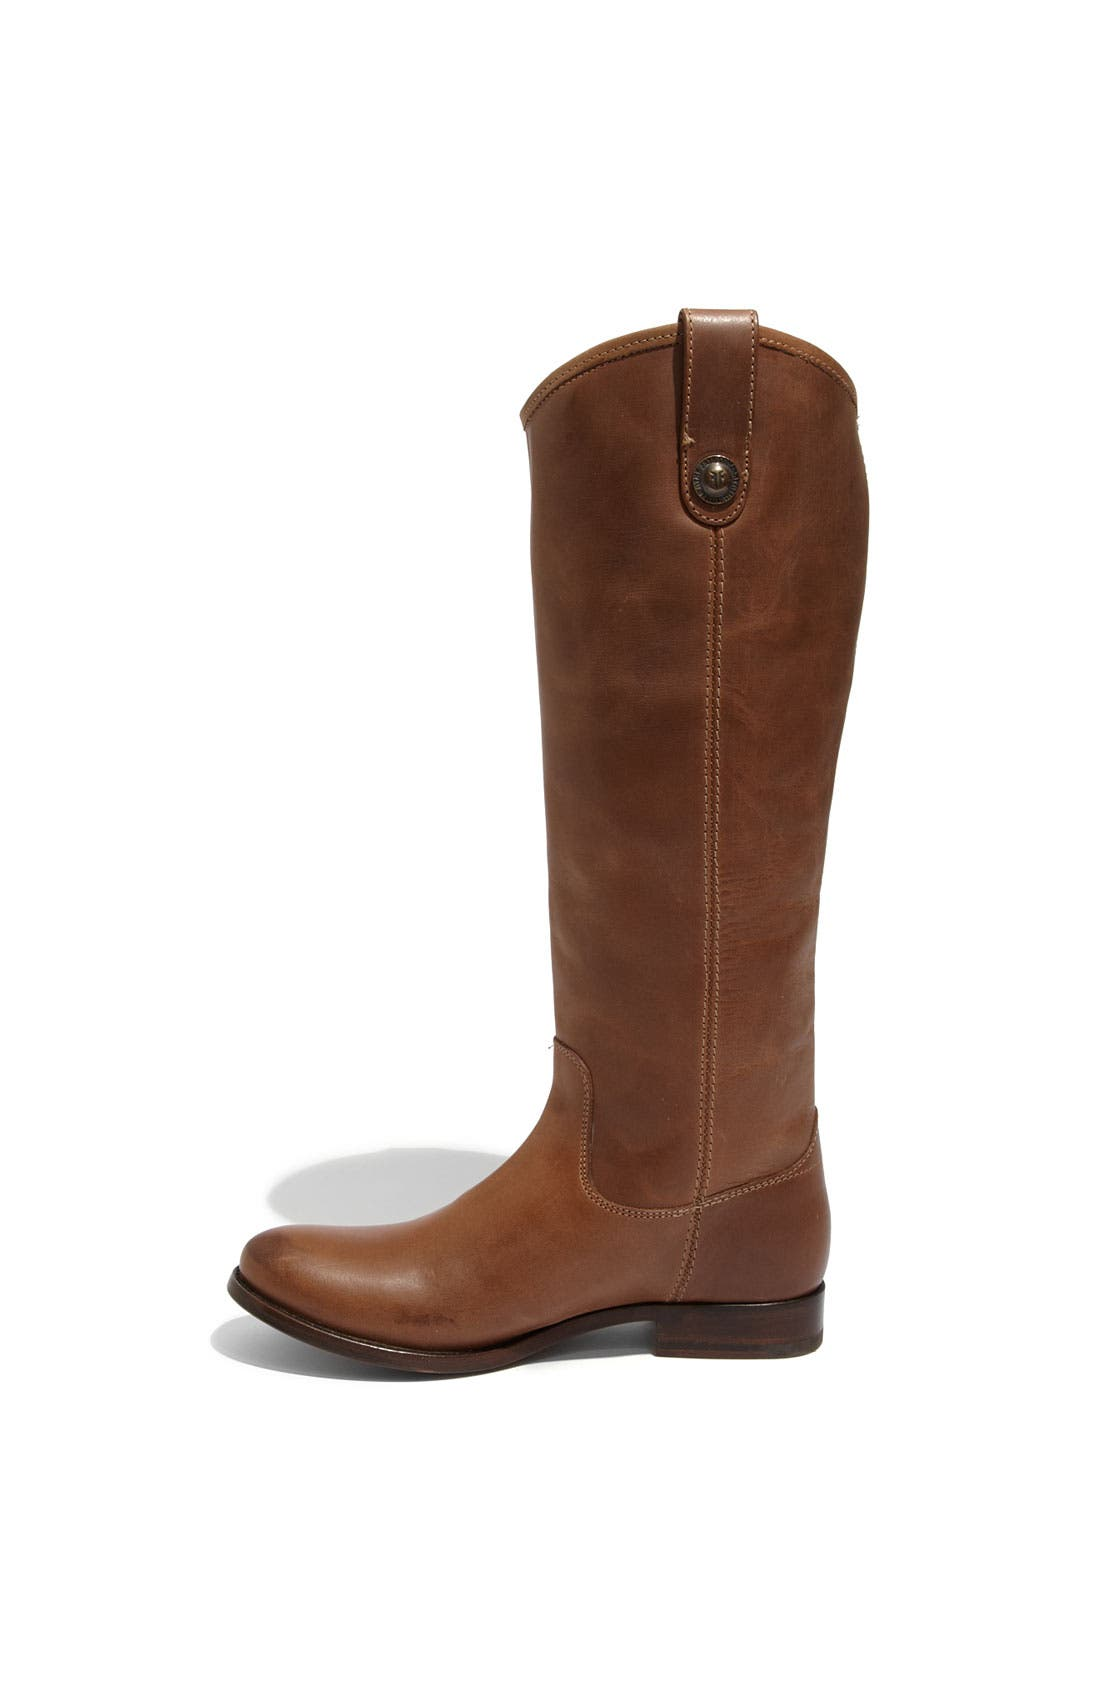 'Melissa Button' Leather Riding Boot,                             Alternate thumbnail 58, color,